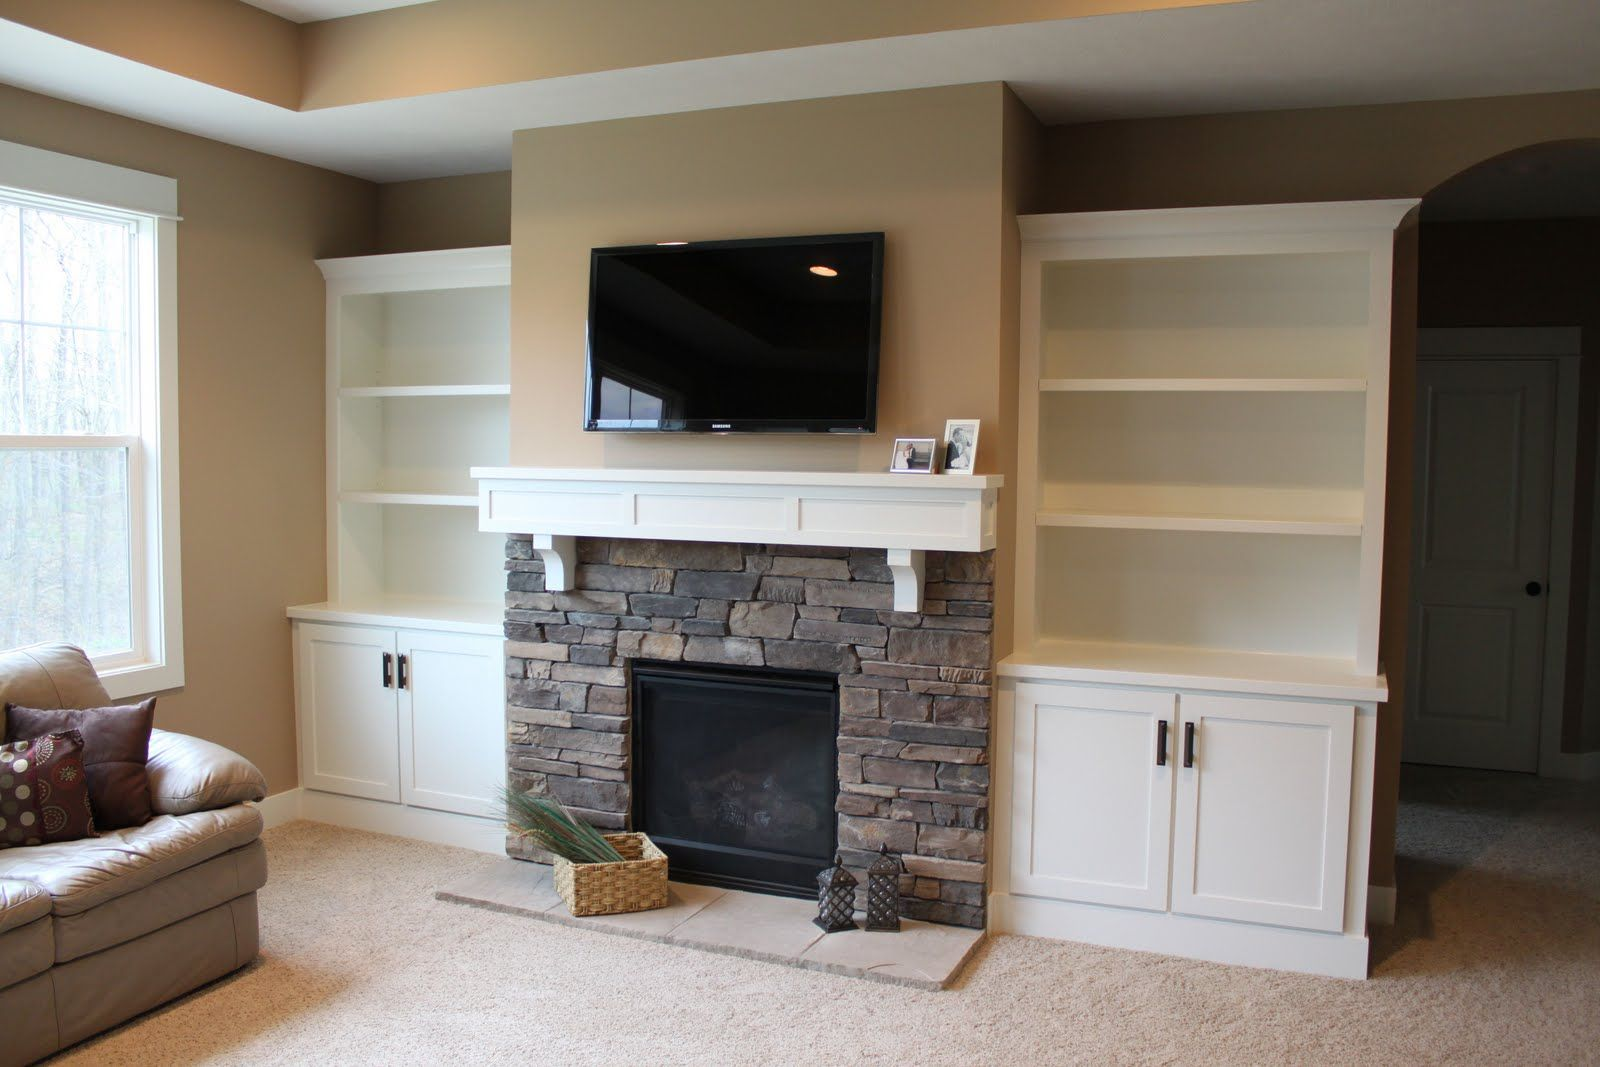 built-in shelves surrounding fireplace | ... built in cabinets and ...